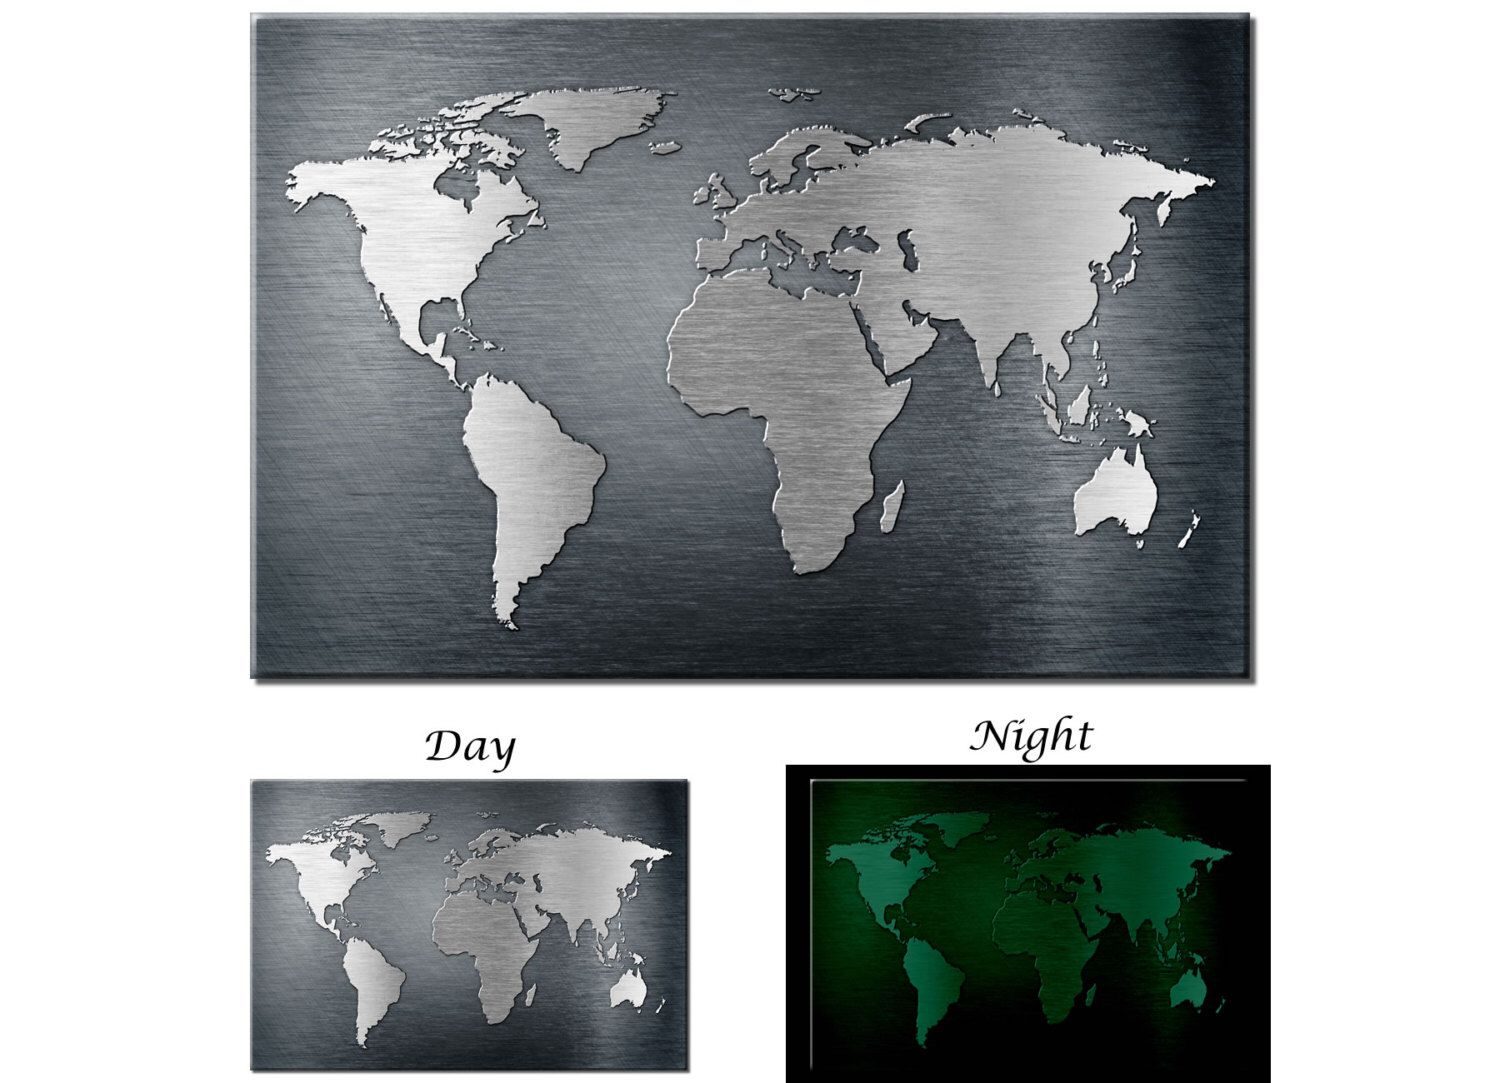 Glow in the dark canvas wall art metal texture world map canvs art glow in the dark canvas wall art metal texture world map canvs art ready to hang gumiabroncs Images